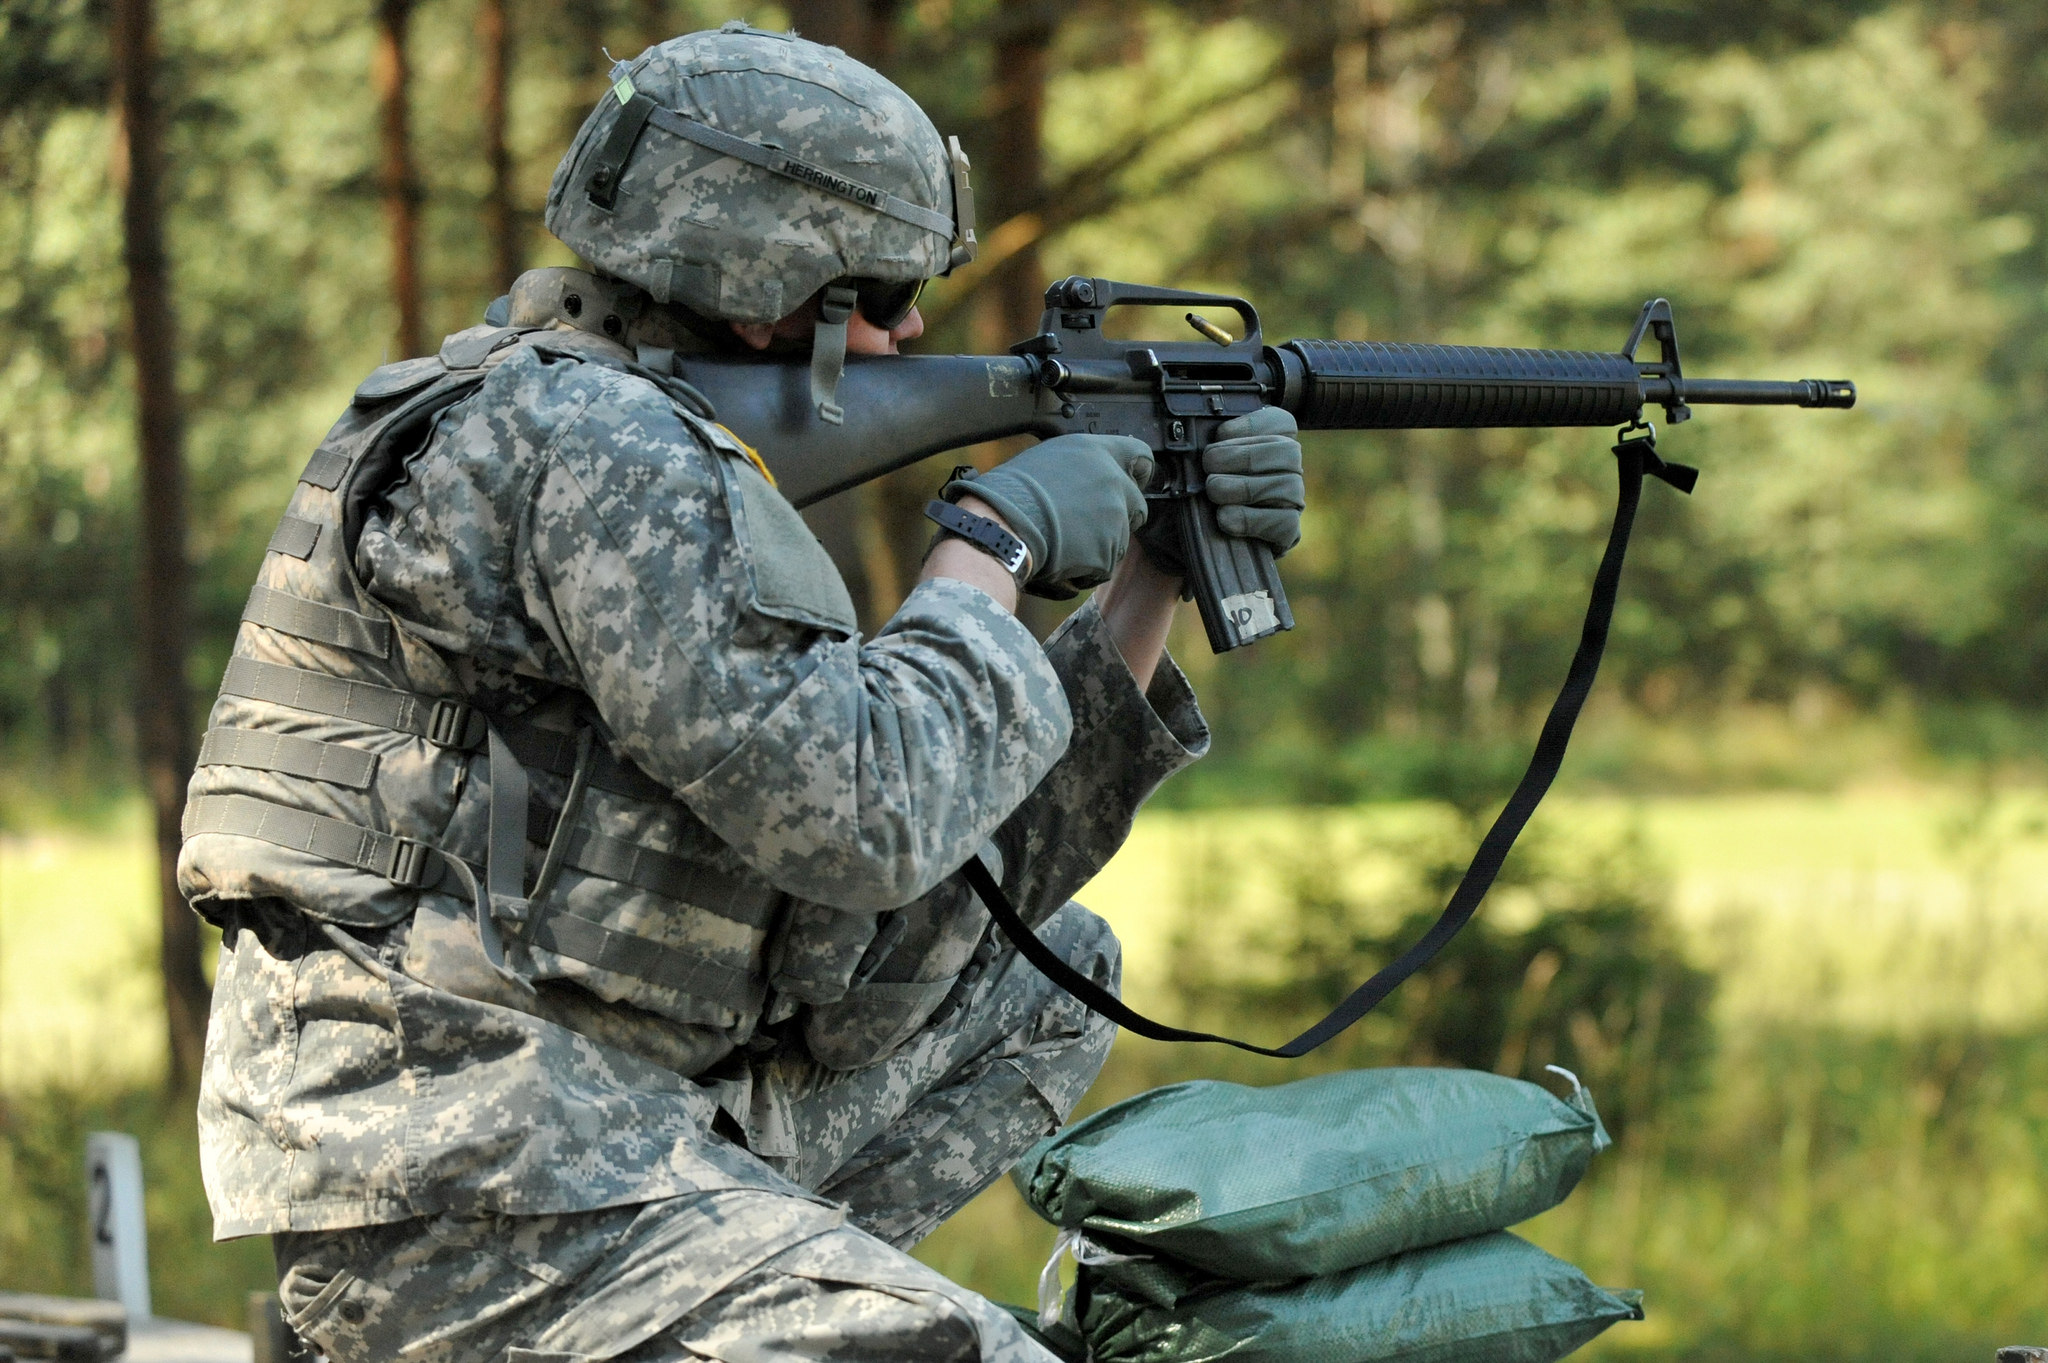 Free download high resolution image - free image free photo free stock image public domain picture -U.S. Army soldier fires his weapon